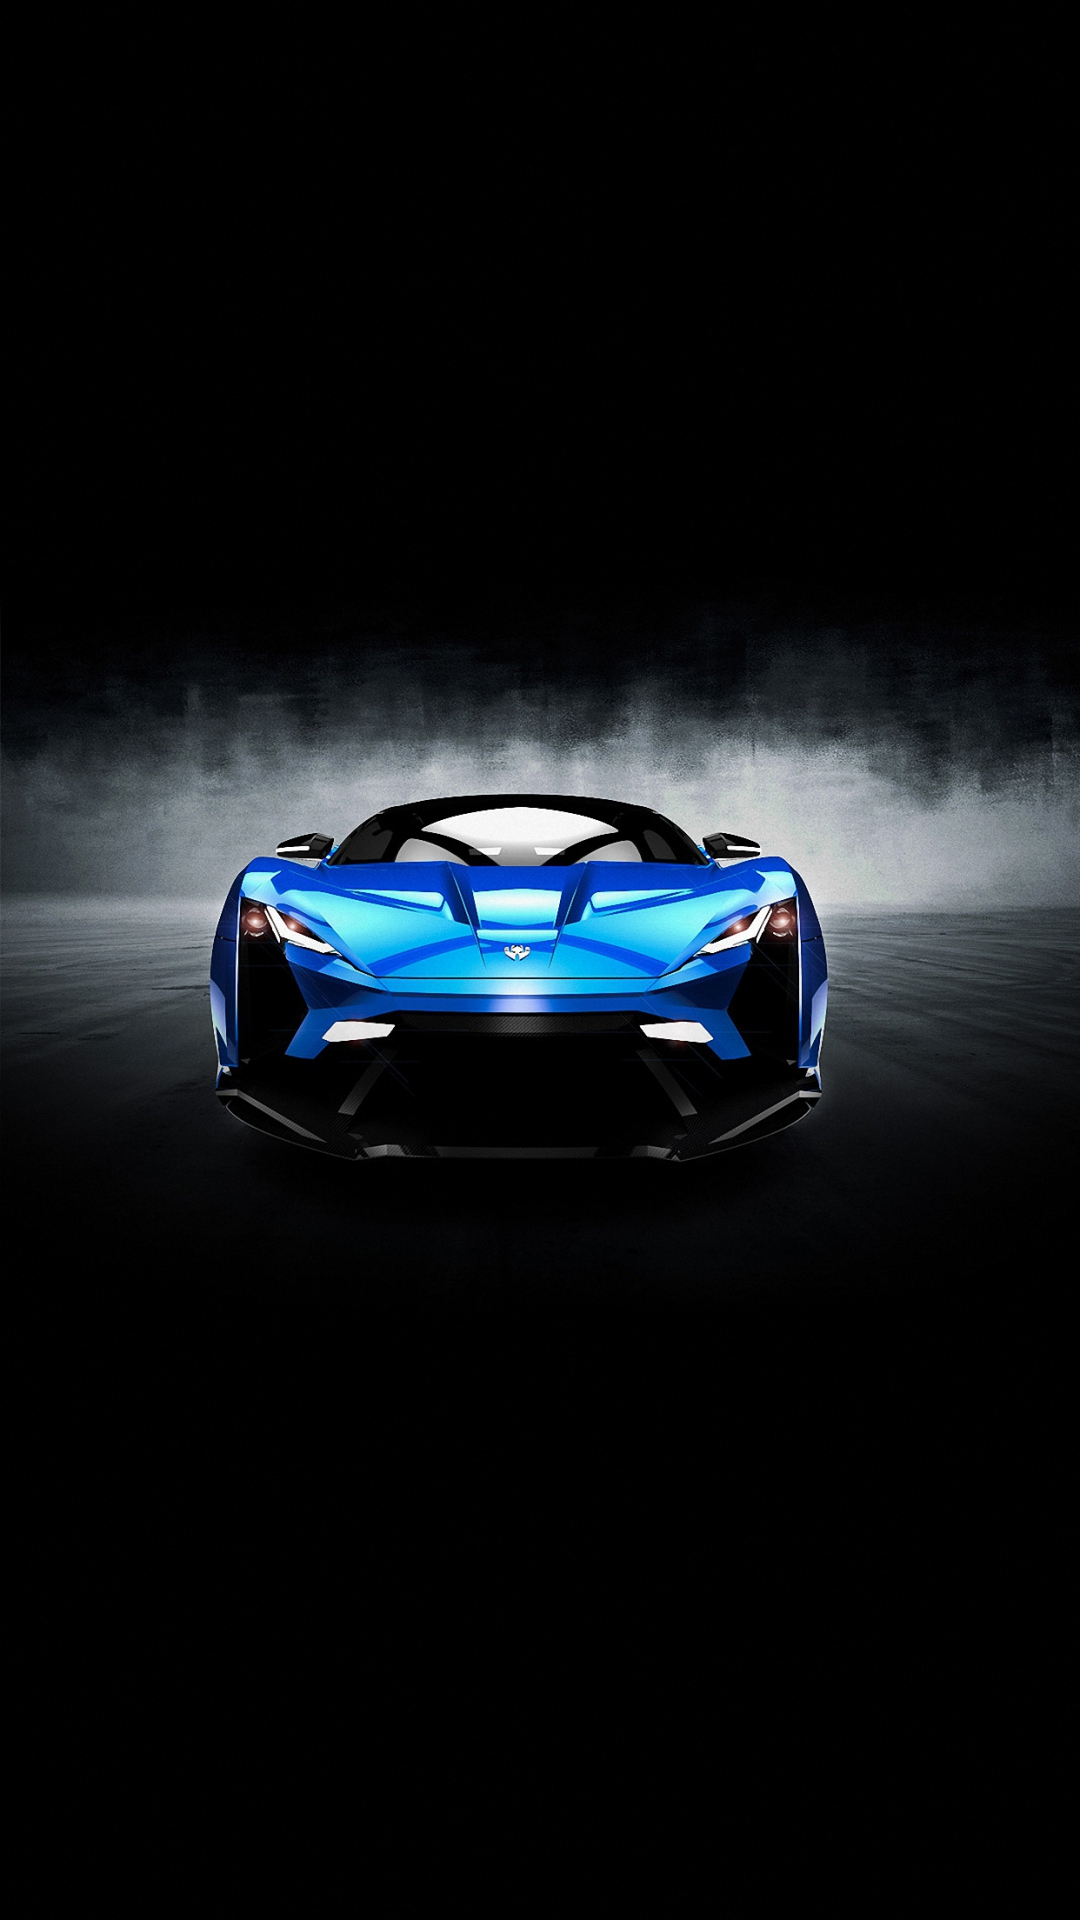 But setting any old live photo isn't going to give you great results: Cool Car Wallpaper For Iphone Supercar Wallpaper 4k Iphone 1080x1920 Wallpaper Teahub Io